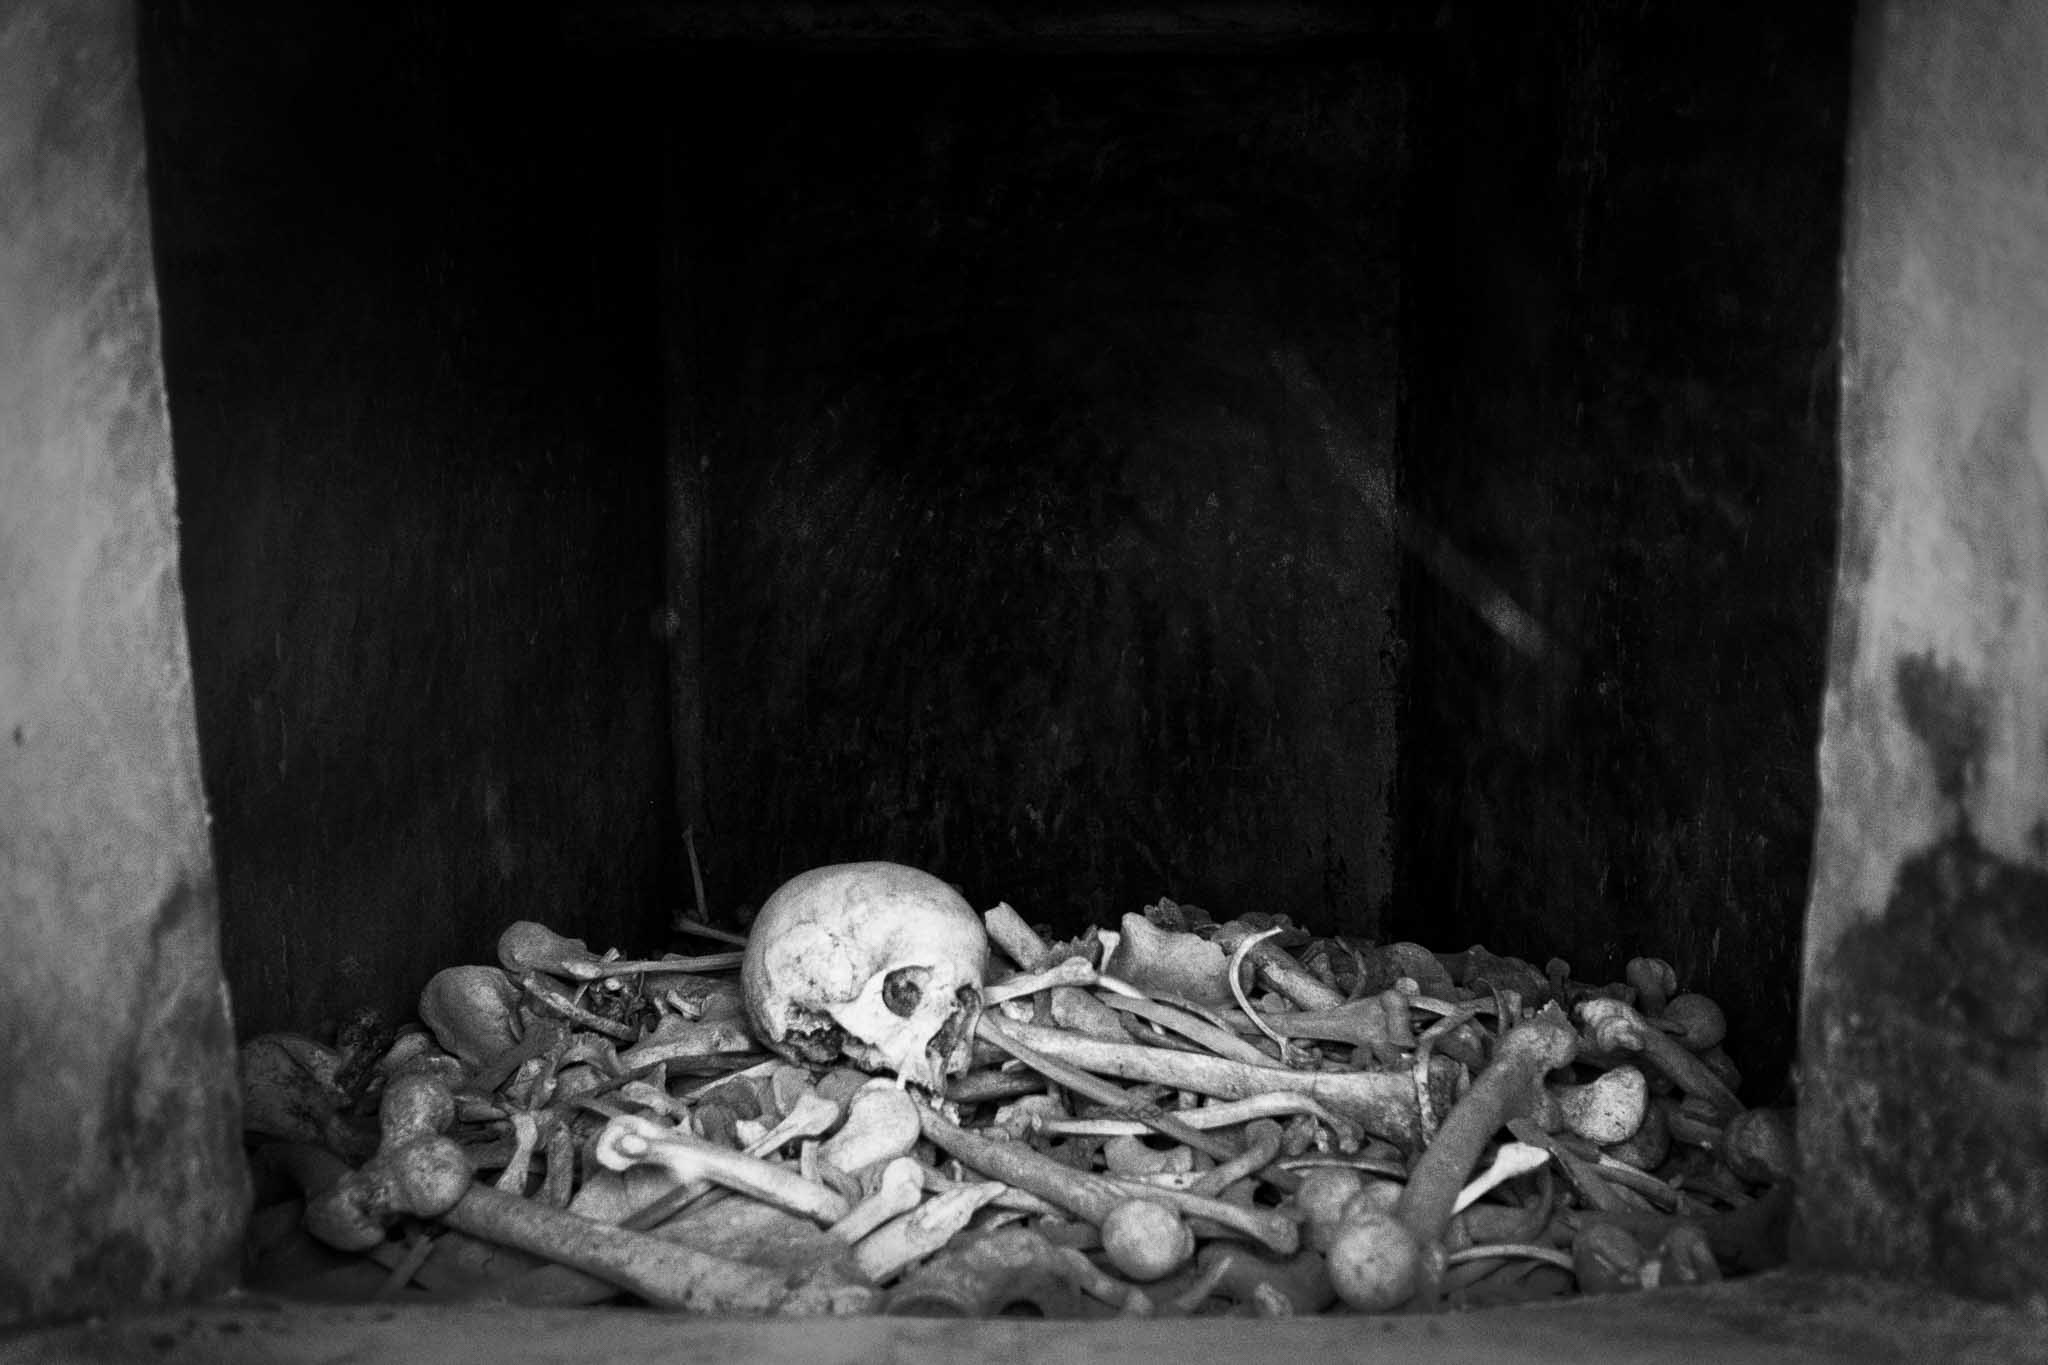 Skeletal remains of soldiers who died on the battlefield during the Battle of Verdun in World War I.